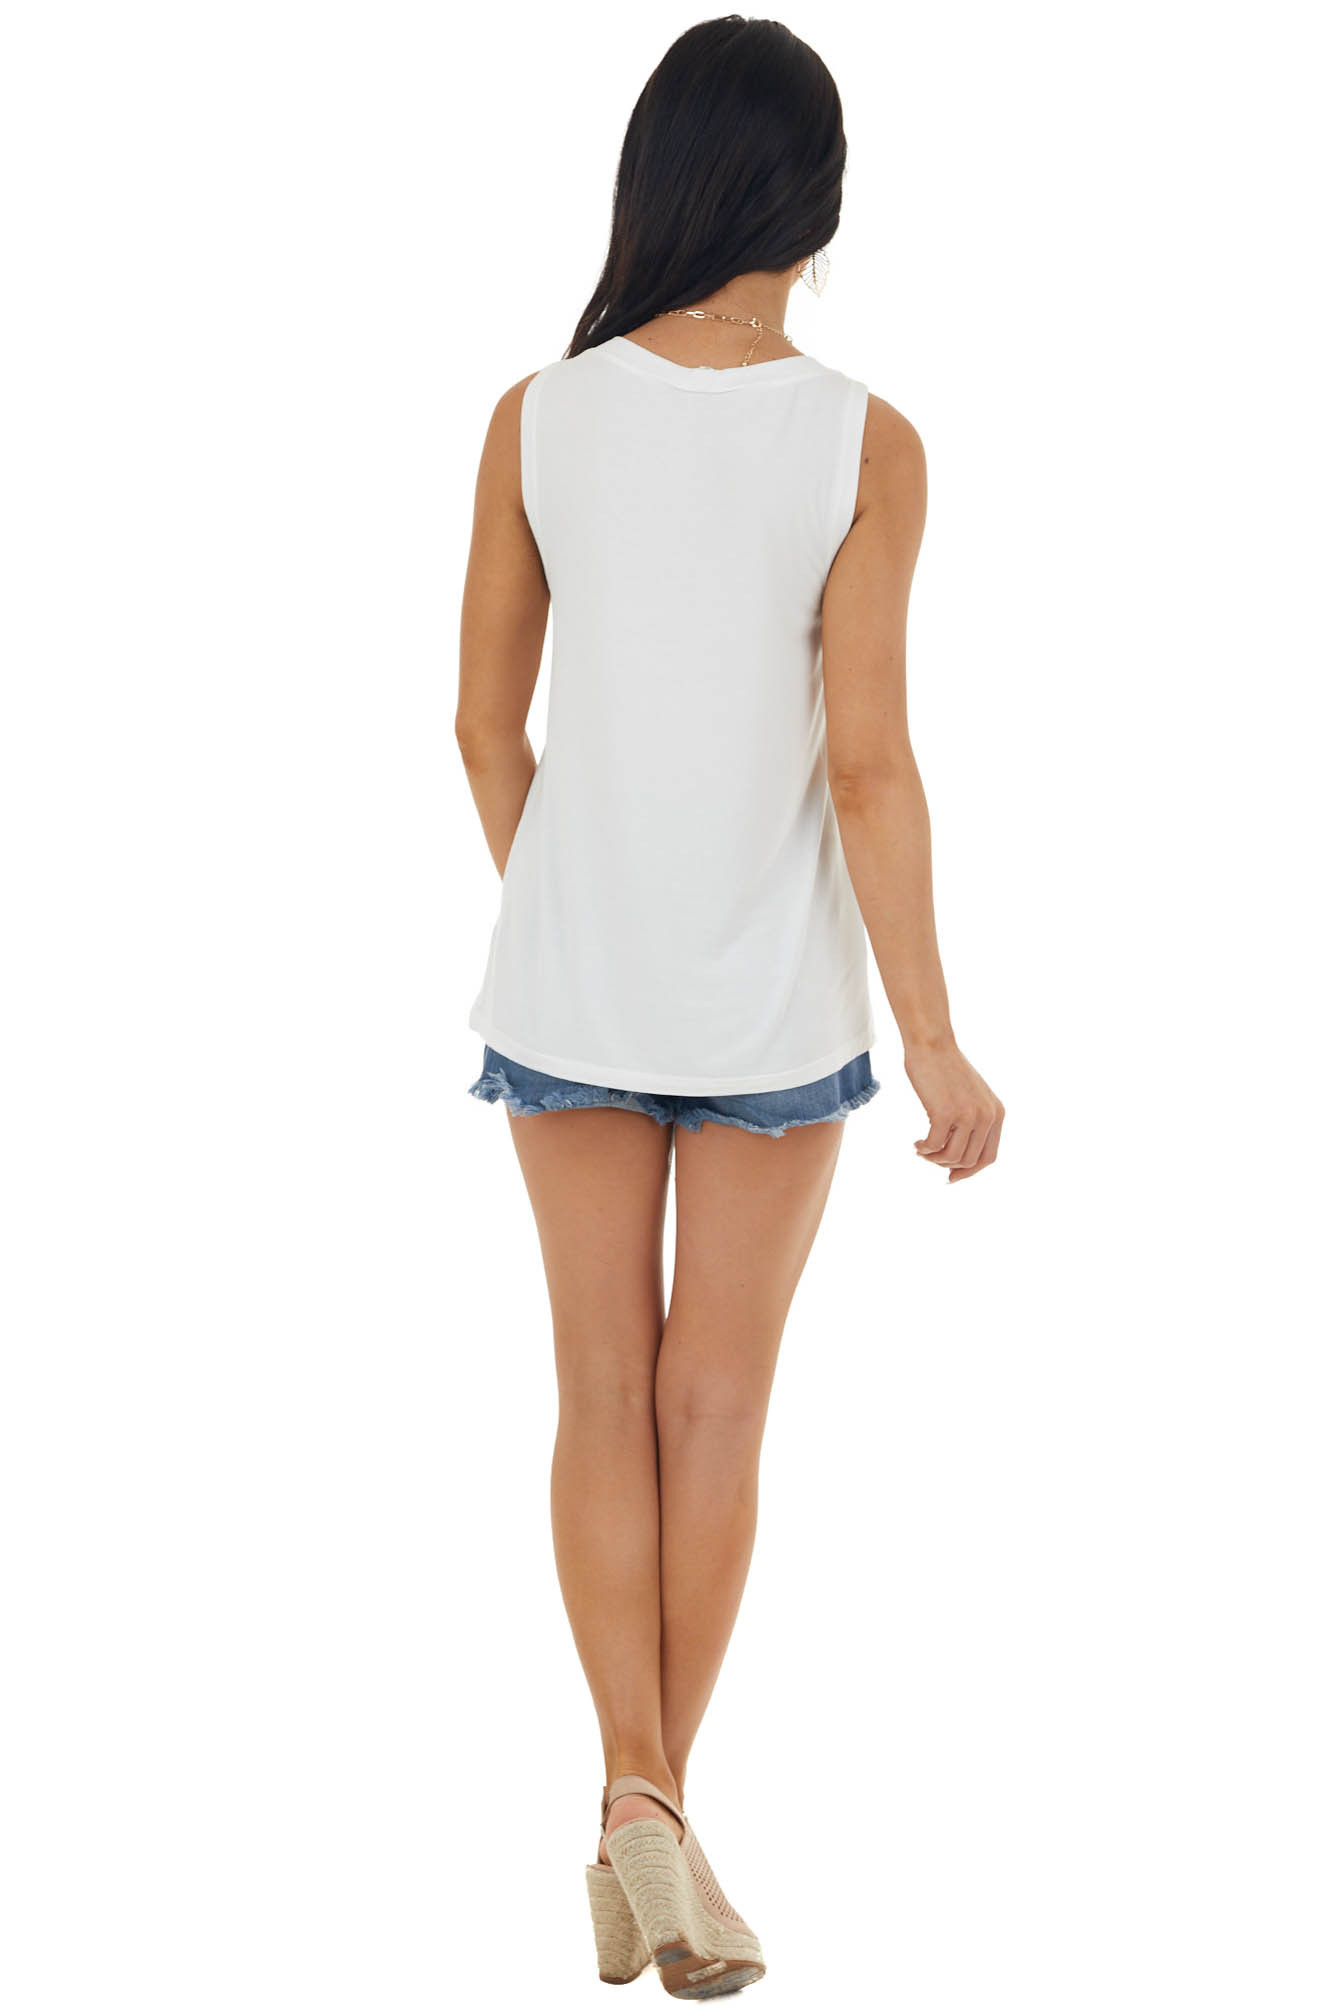 Ivory Stretchy Knit Tank Top with Buttons